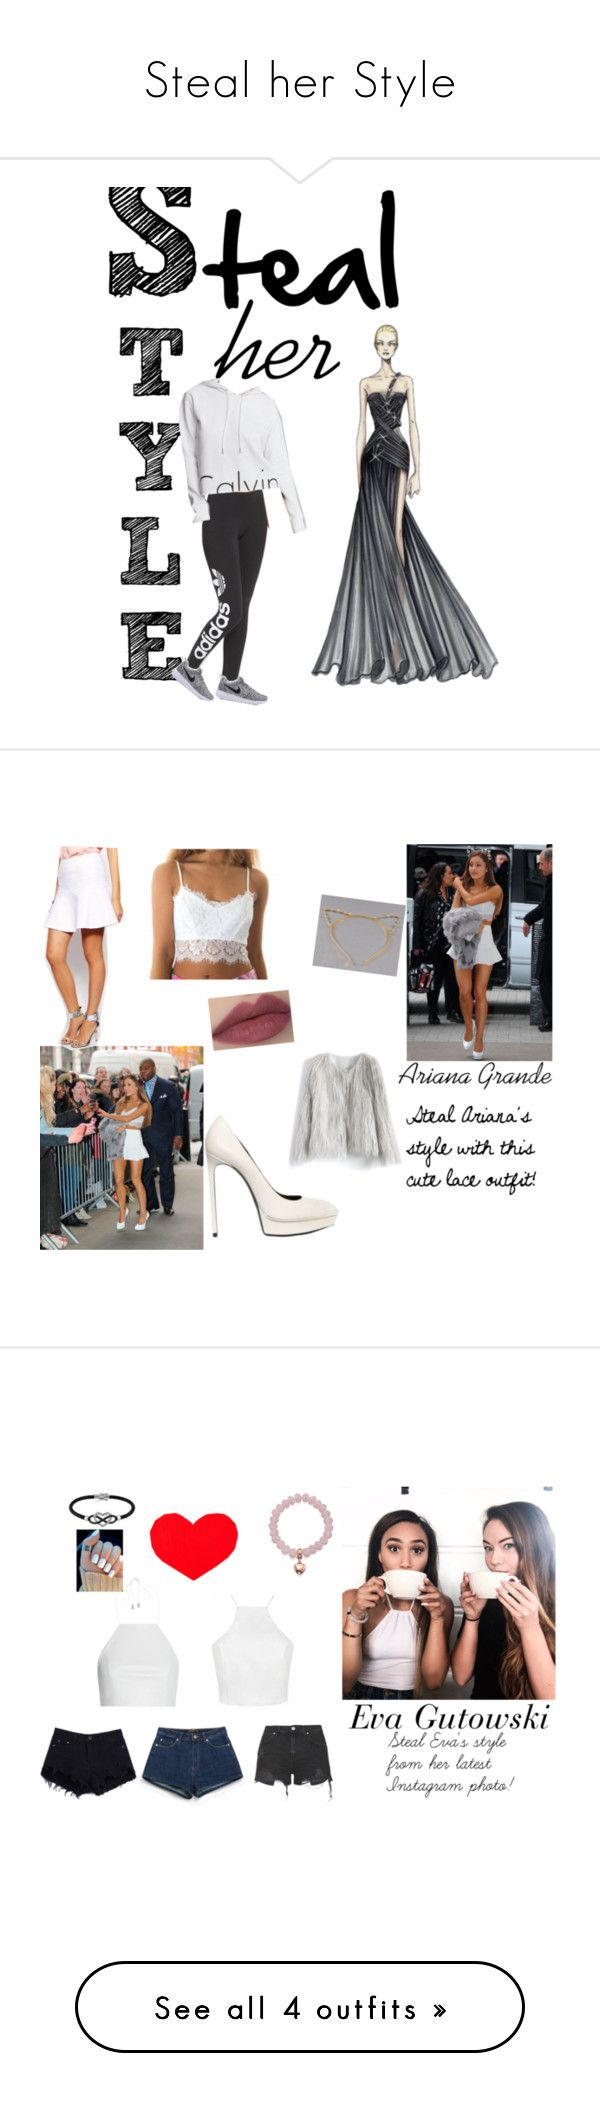 Steal her Style by lidage on Polyvore featuring Versace, adidas Originals, Calvin Klein, Ted Baker, Chicwish, lace, followme, ArianaGrande, Stealherstyle and lacelook